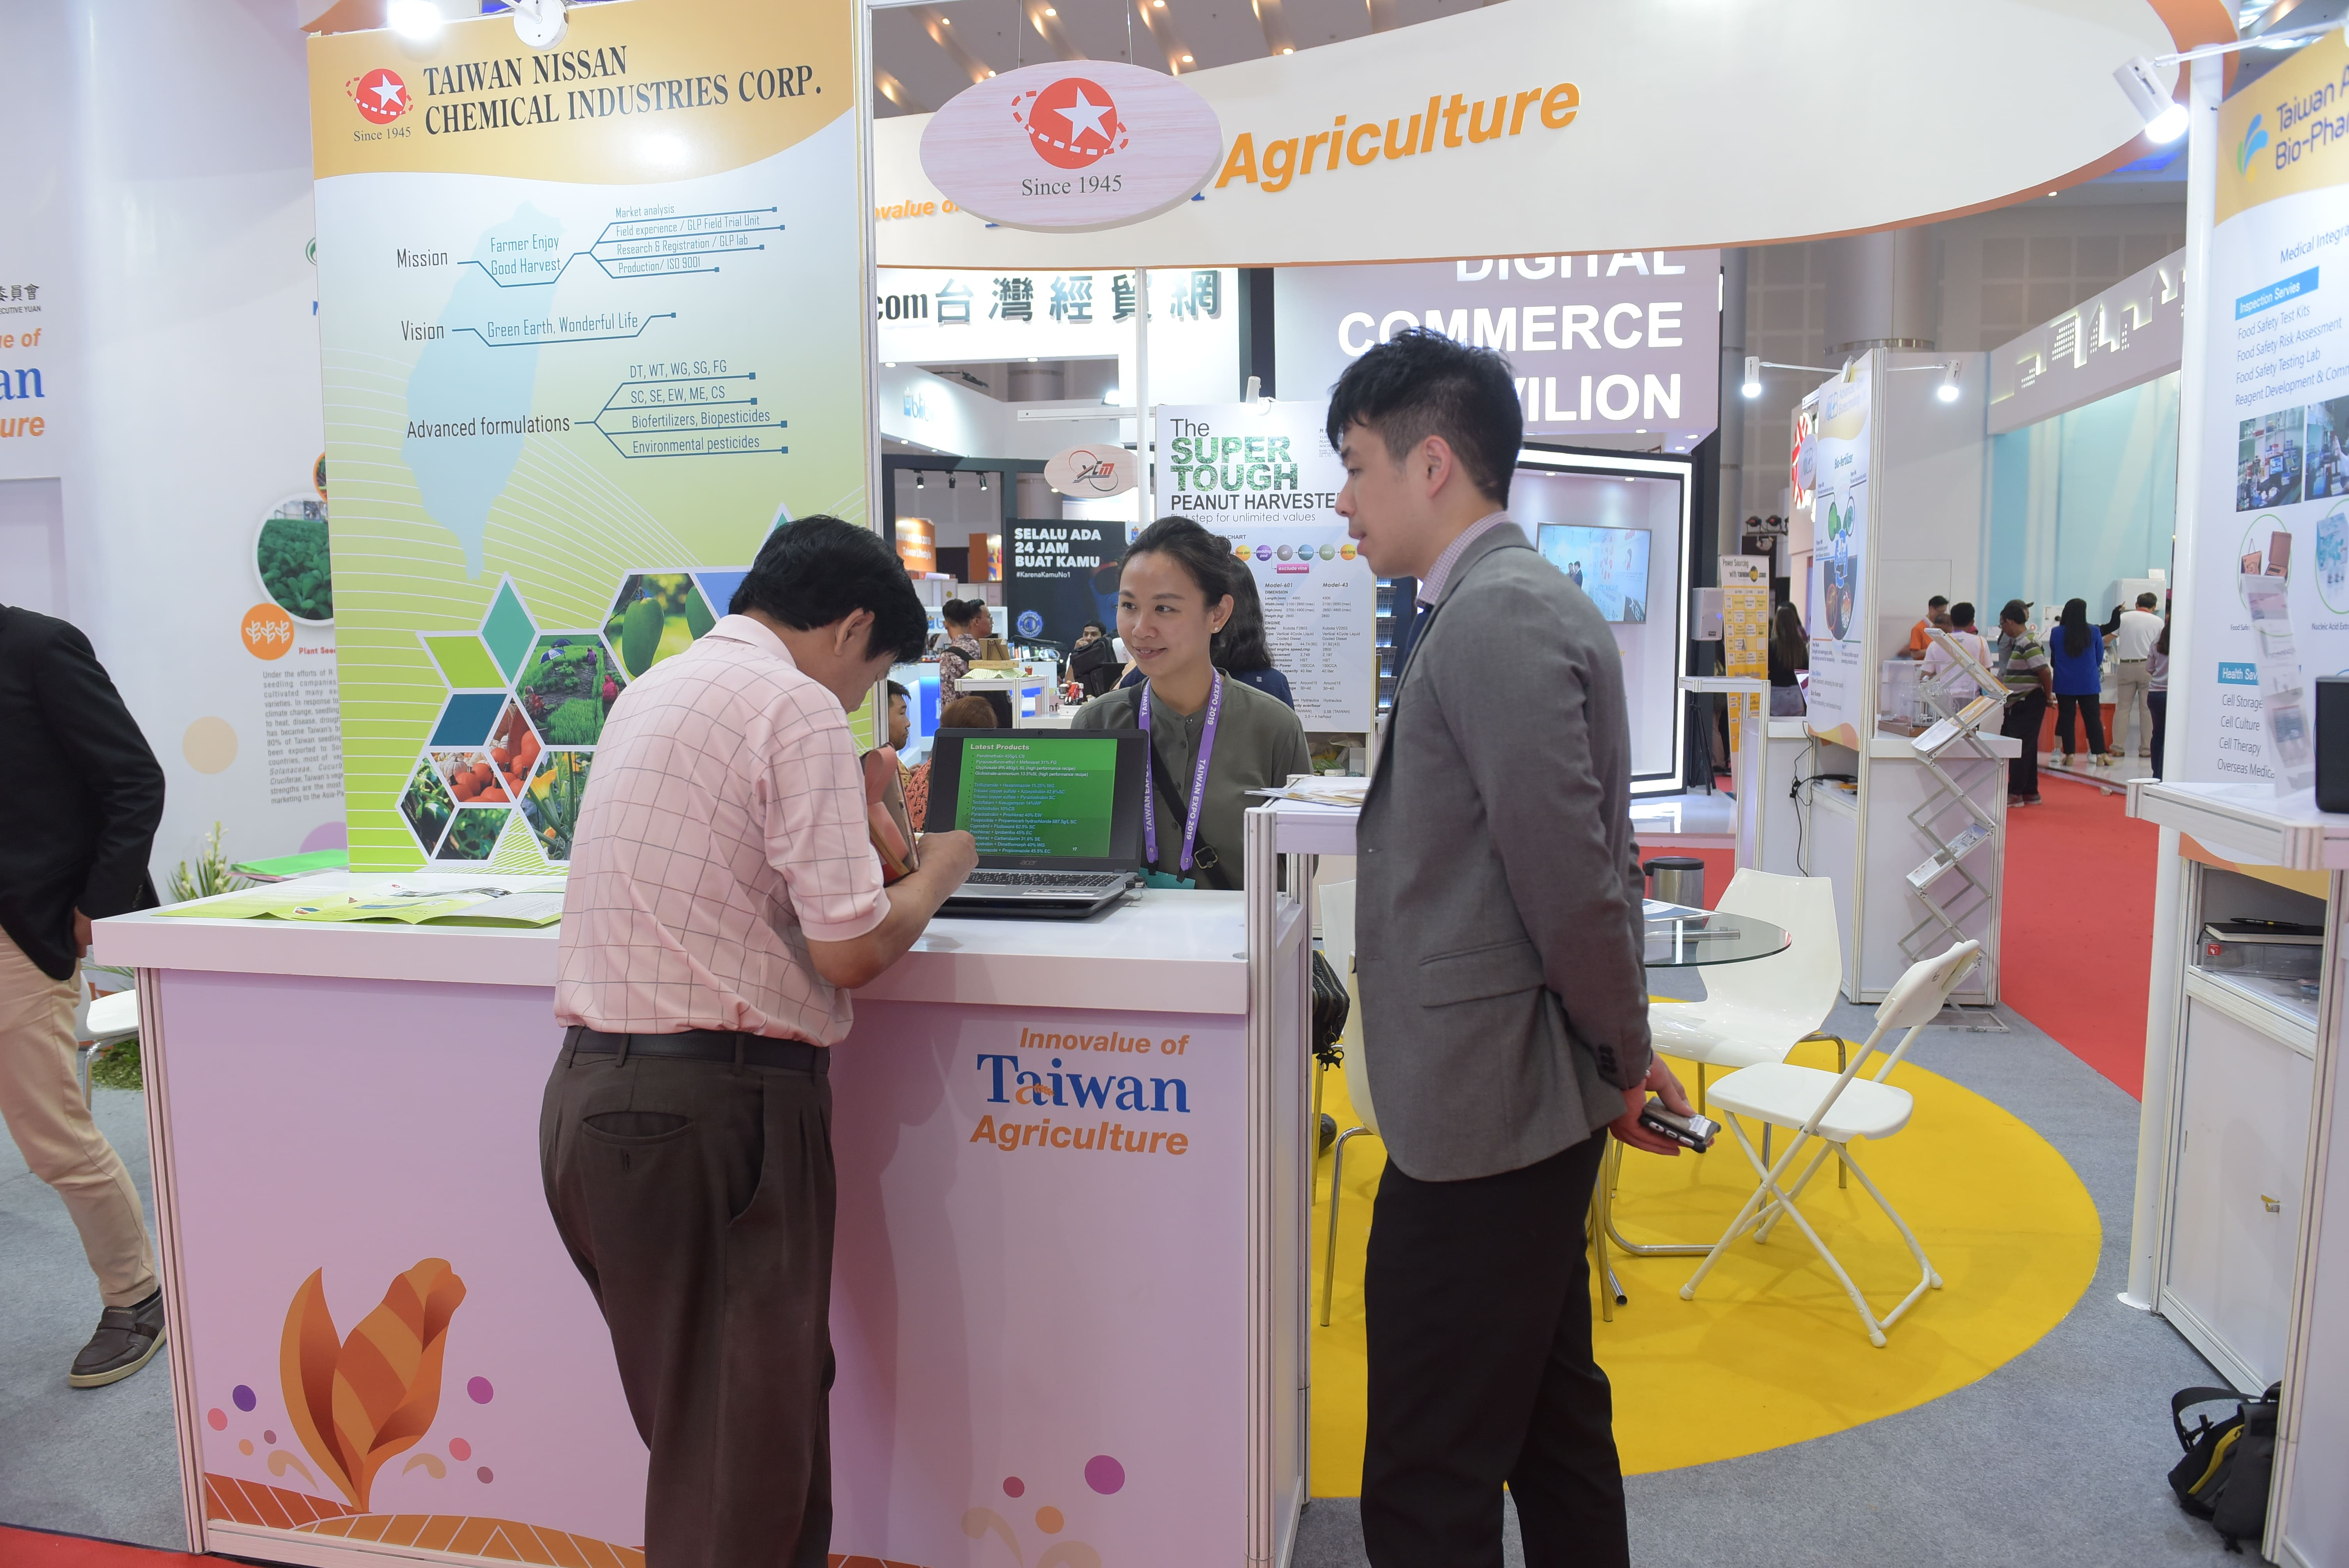 https://storage.googleapis.com/www.taiwantradeshow.com.tw/model/photo/ID/2019/PH00037329-name.jpg